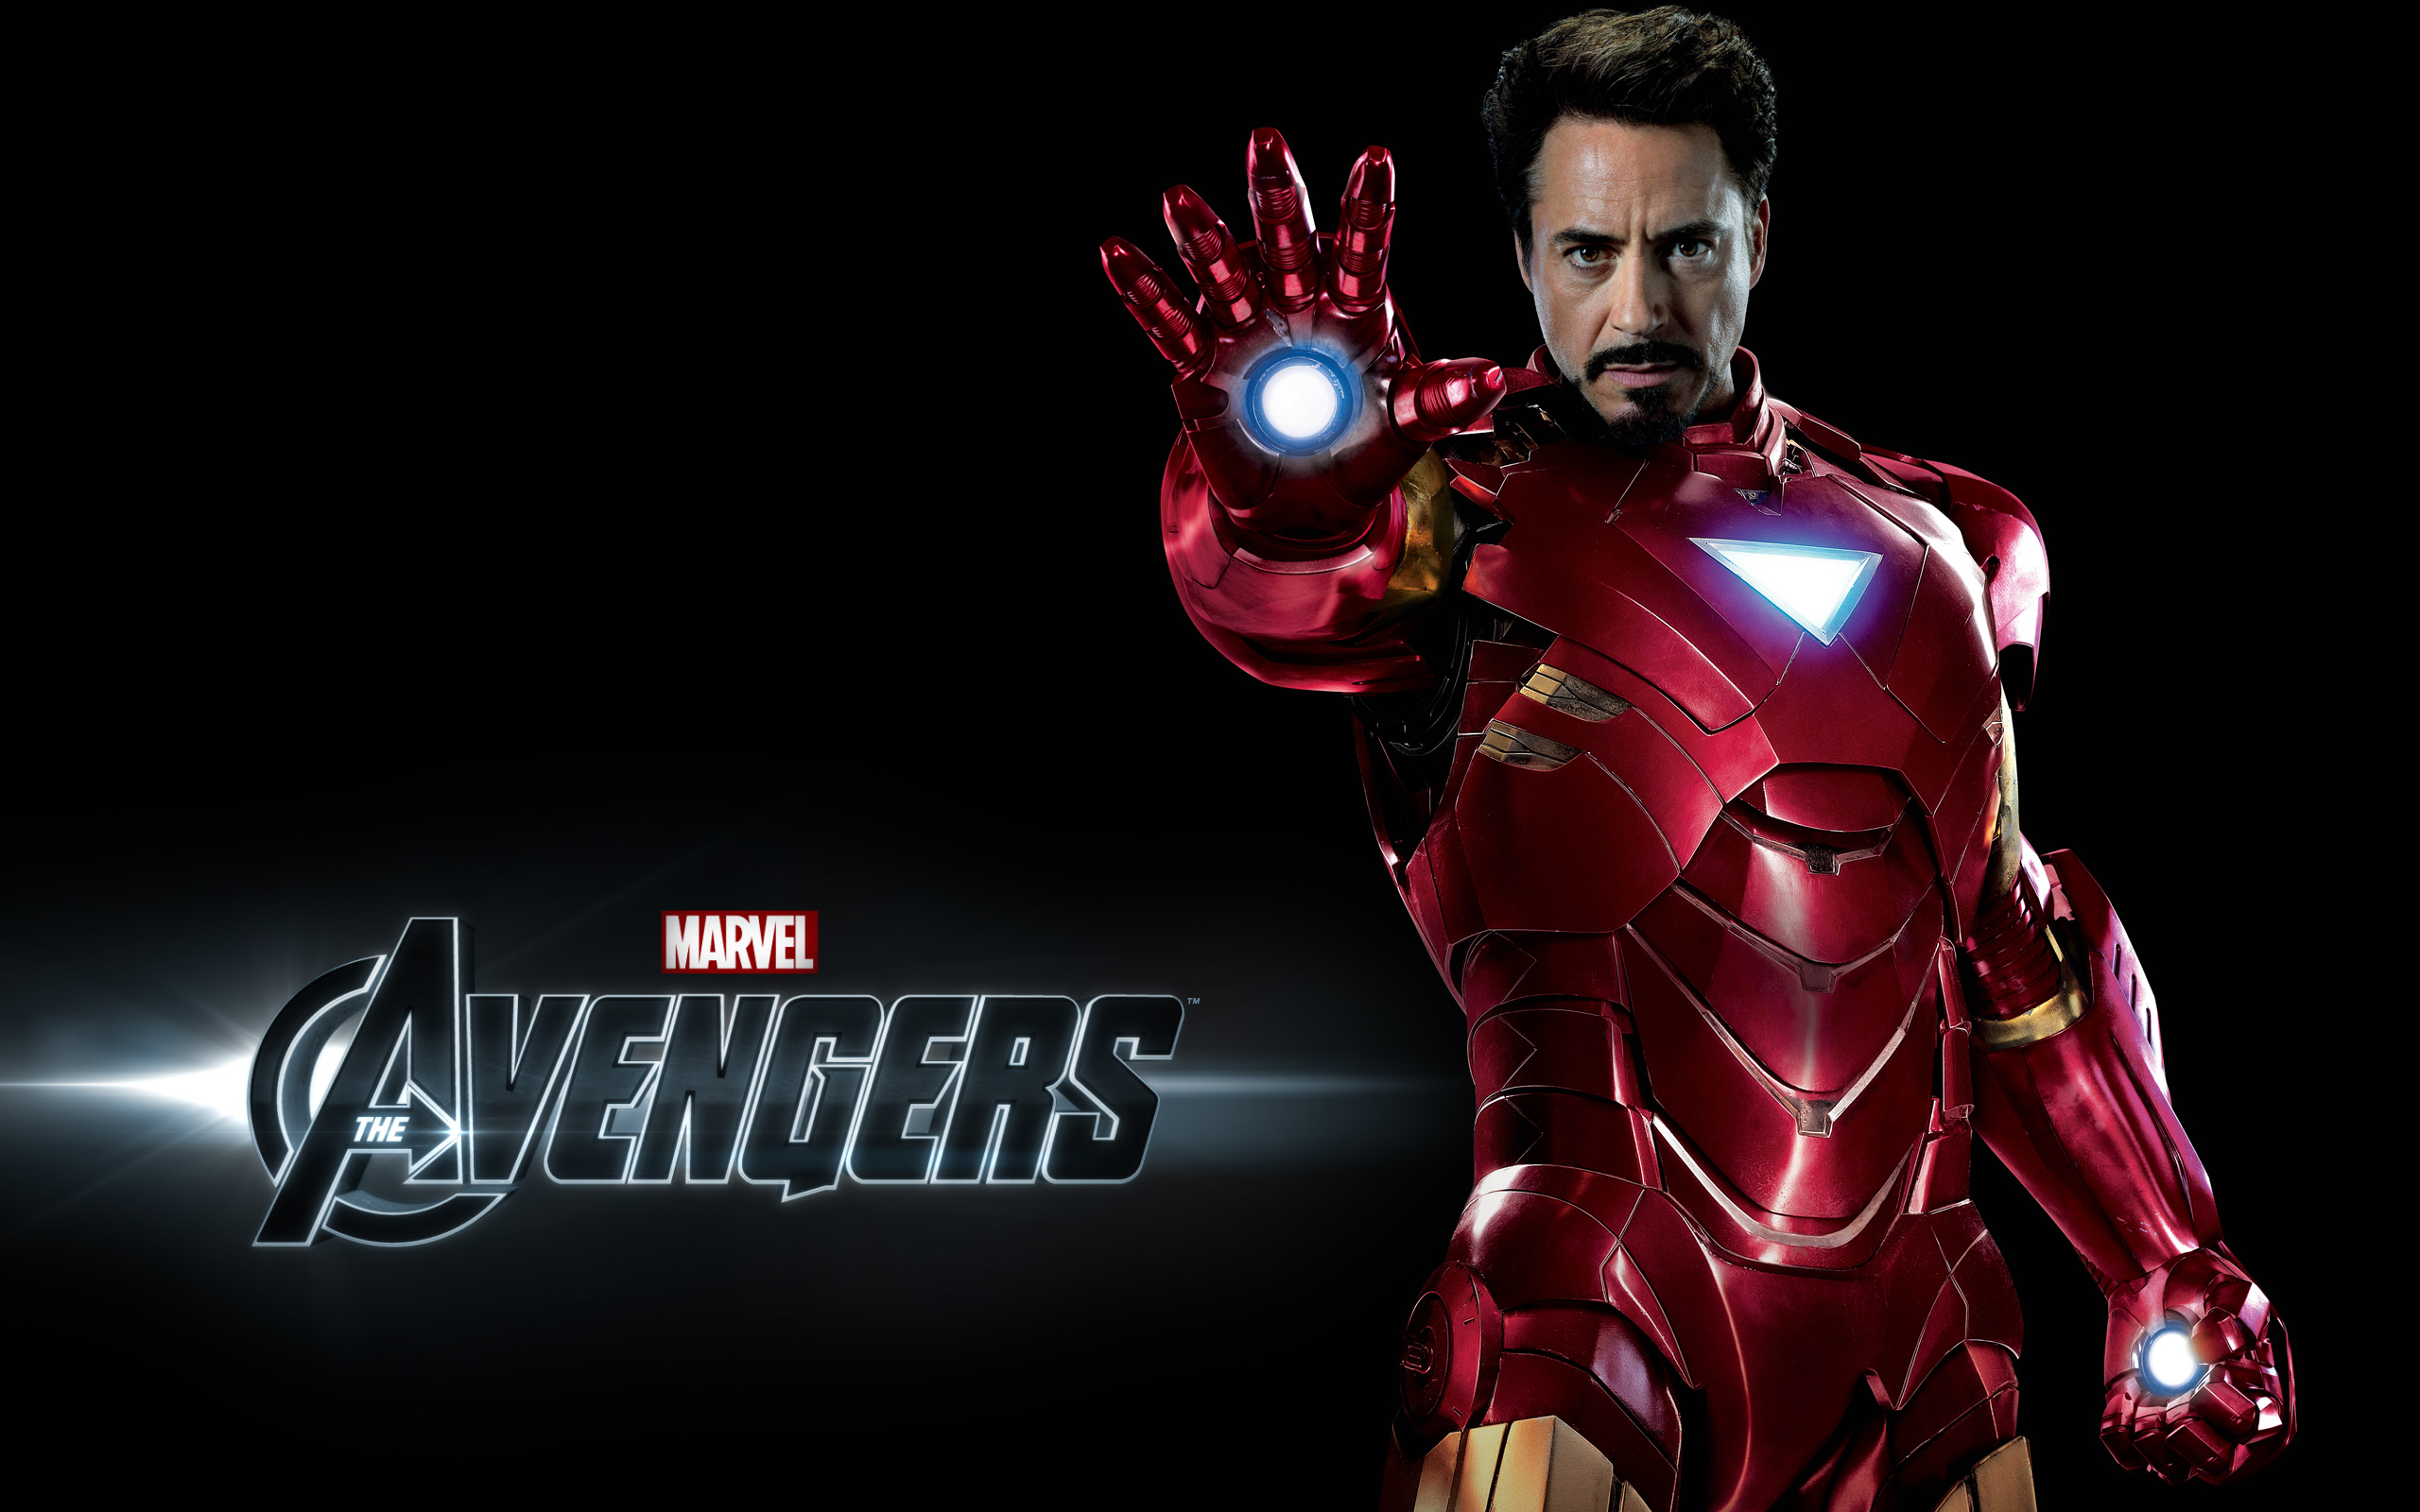 Avengers Wallpaper Full HD